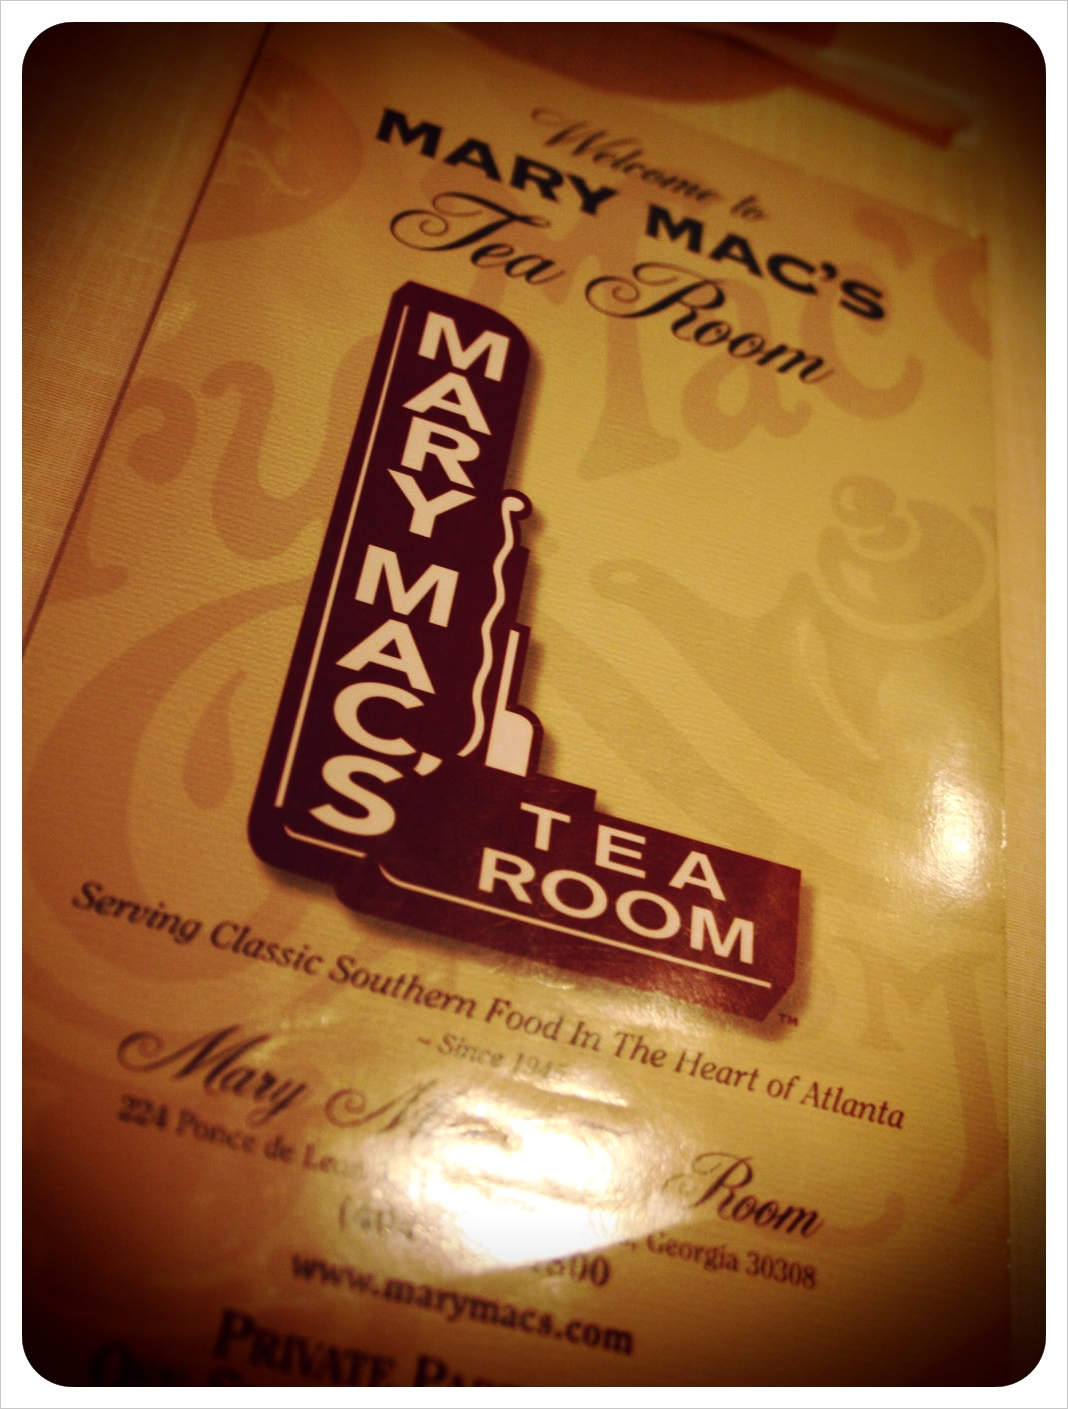 Mary Macs Tea Room Atlanta